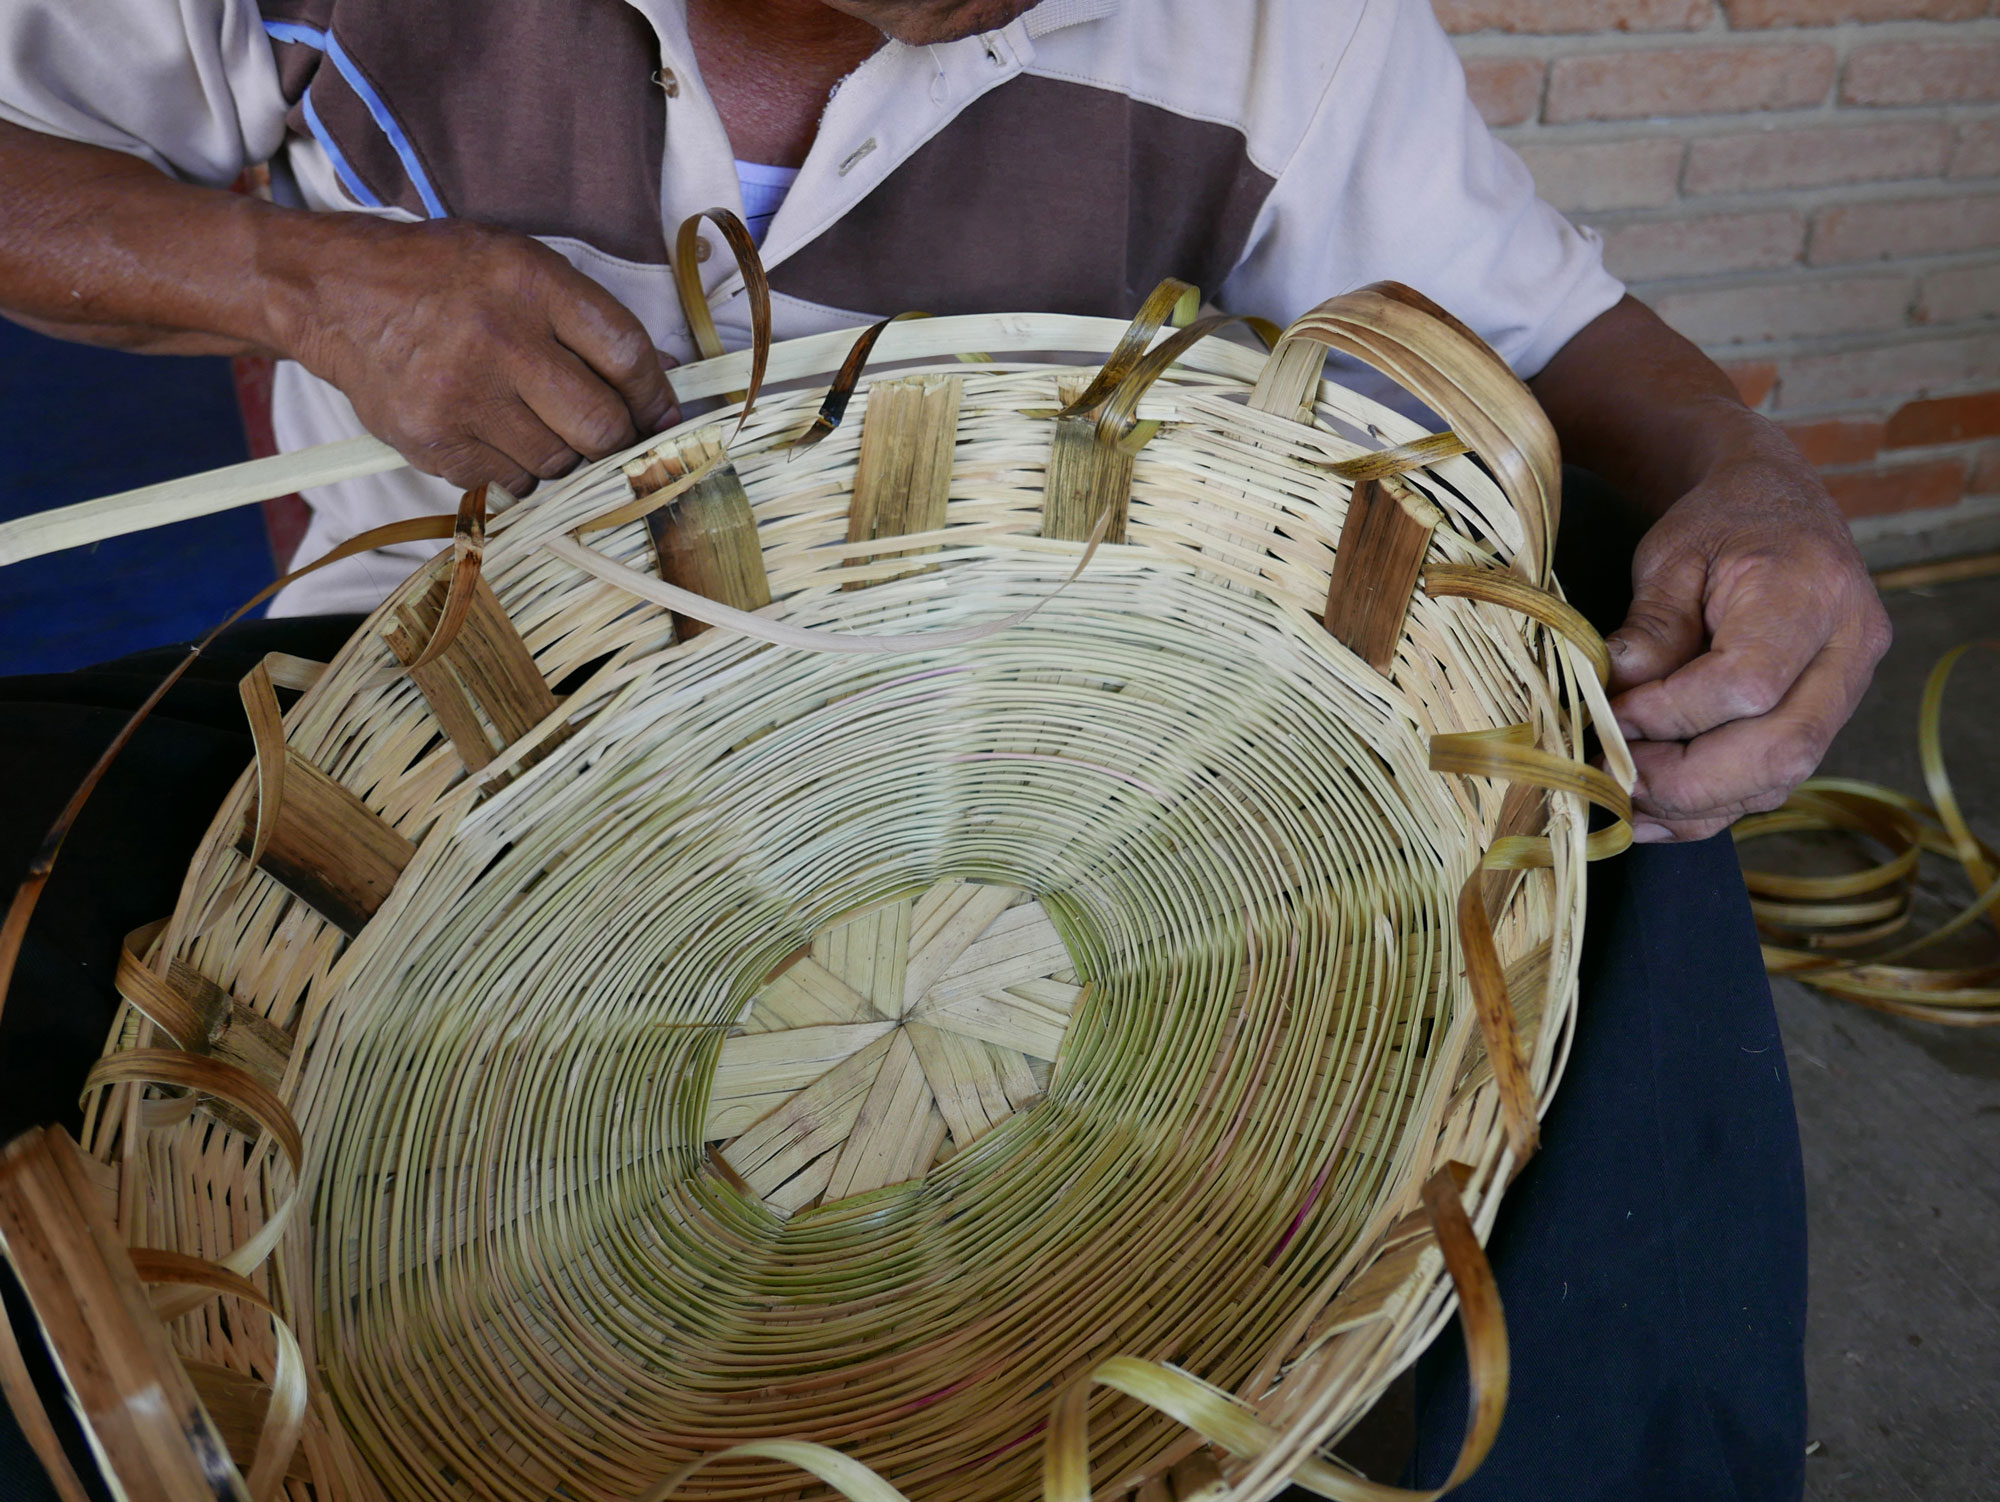 Basket Making using Carrizo Reeds in Oaxaca Mexico - www.nidocollective.com/carrizoweaving #carrizo #canastascarrizo #basketweaving